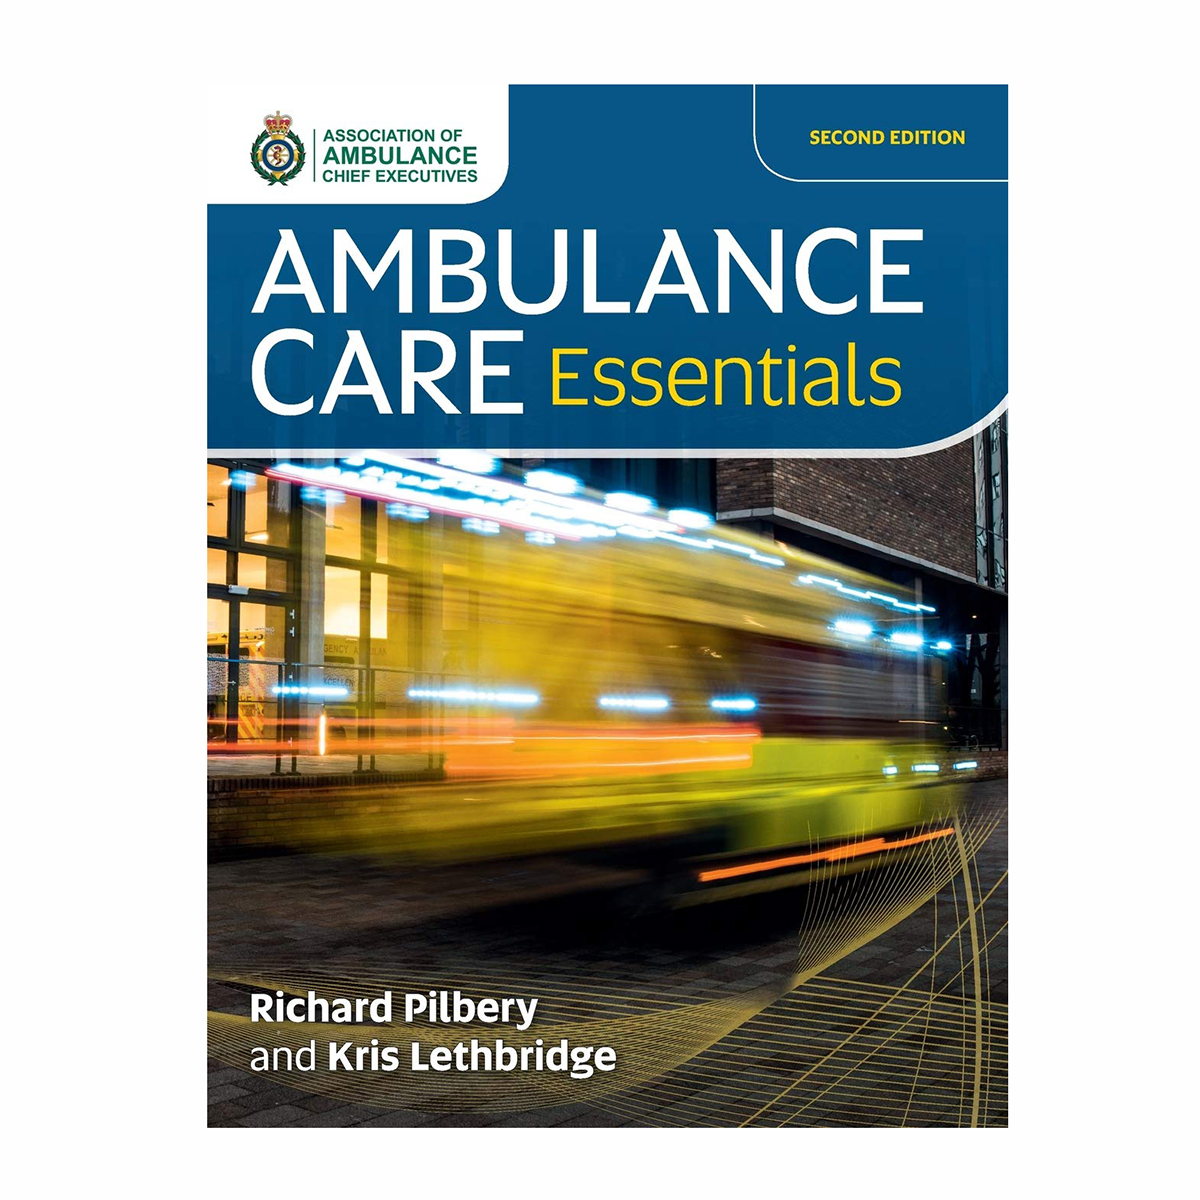 Ambulance Care Essentials Manual 2nd Edition